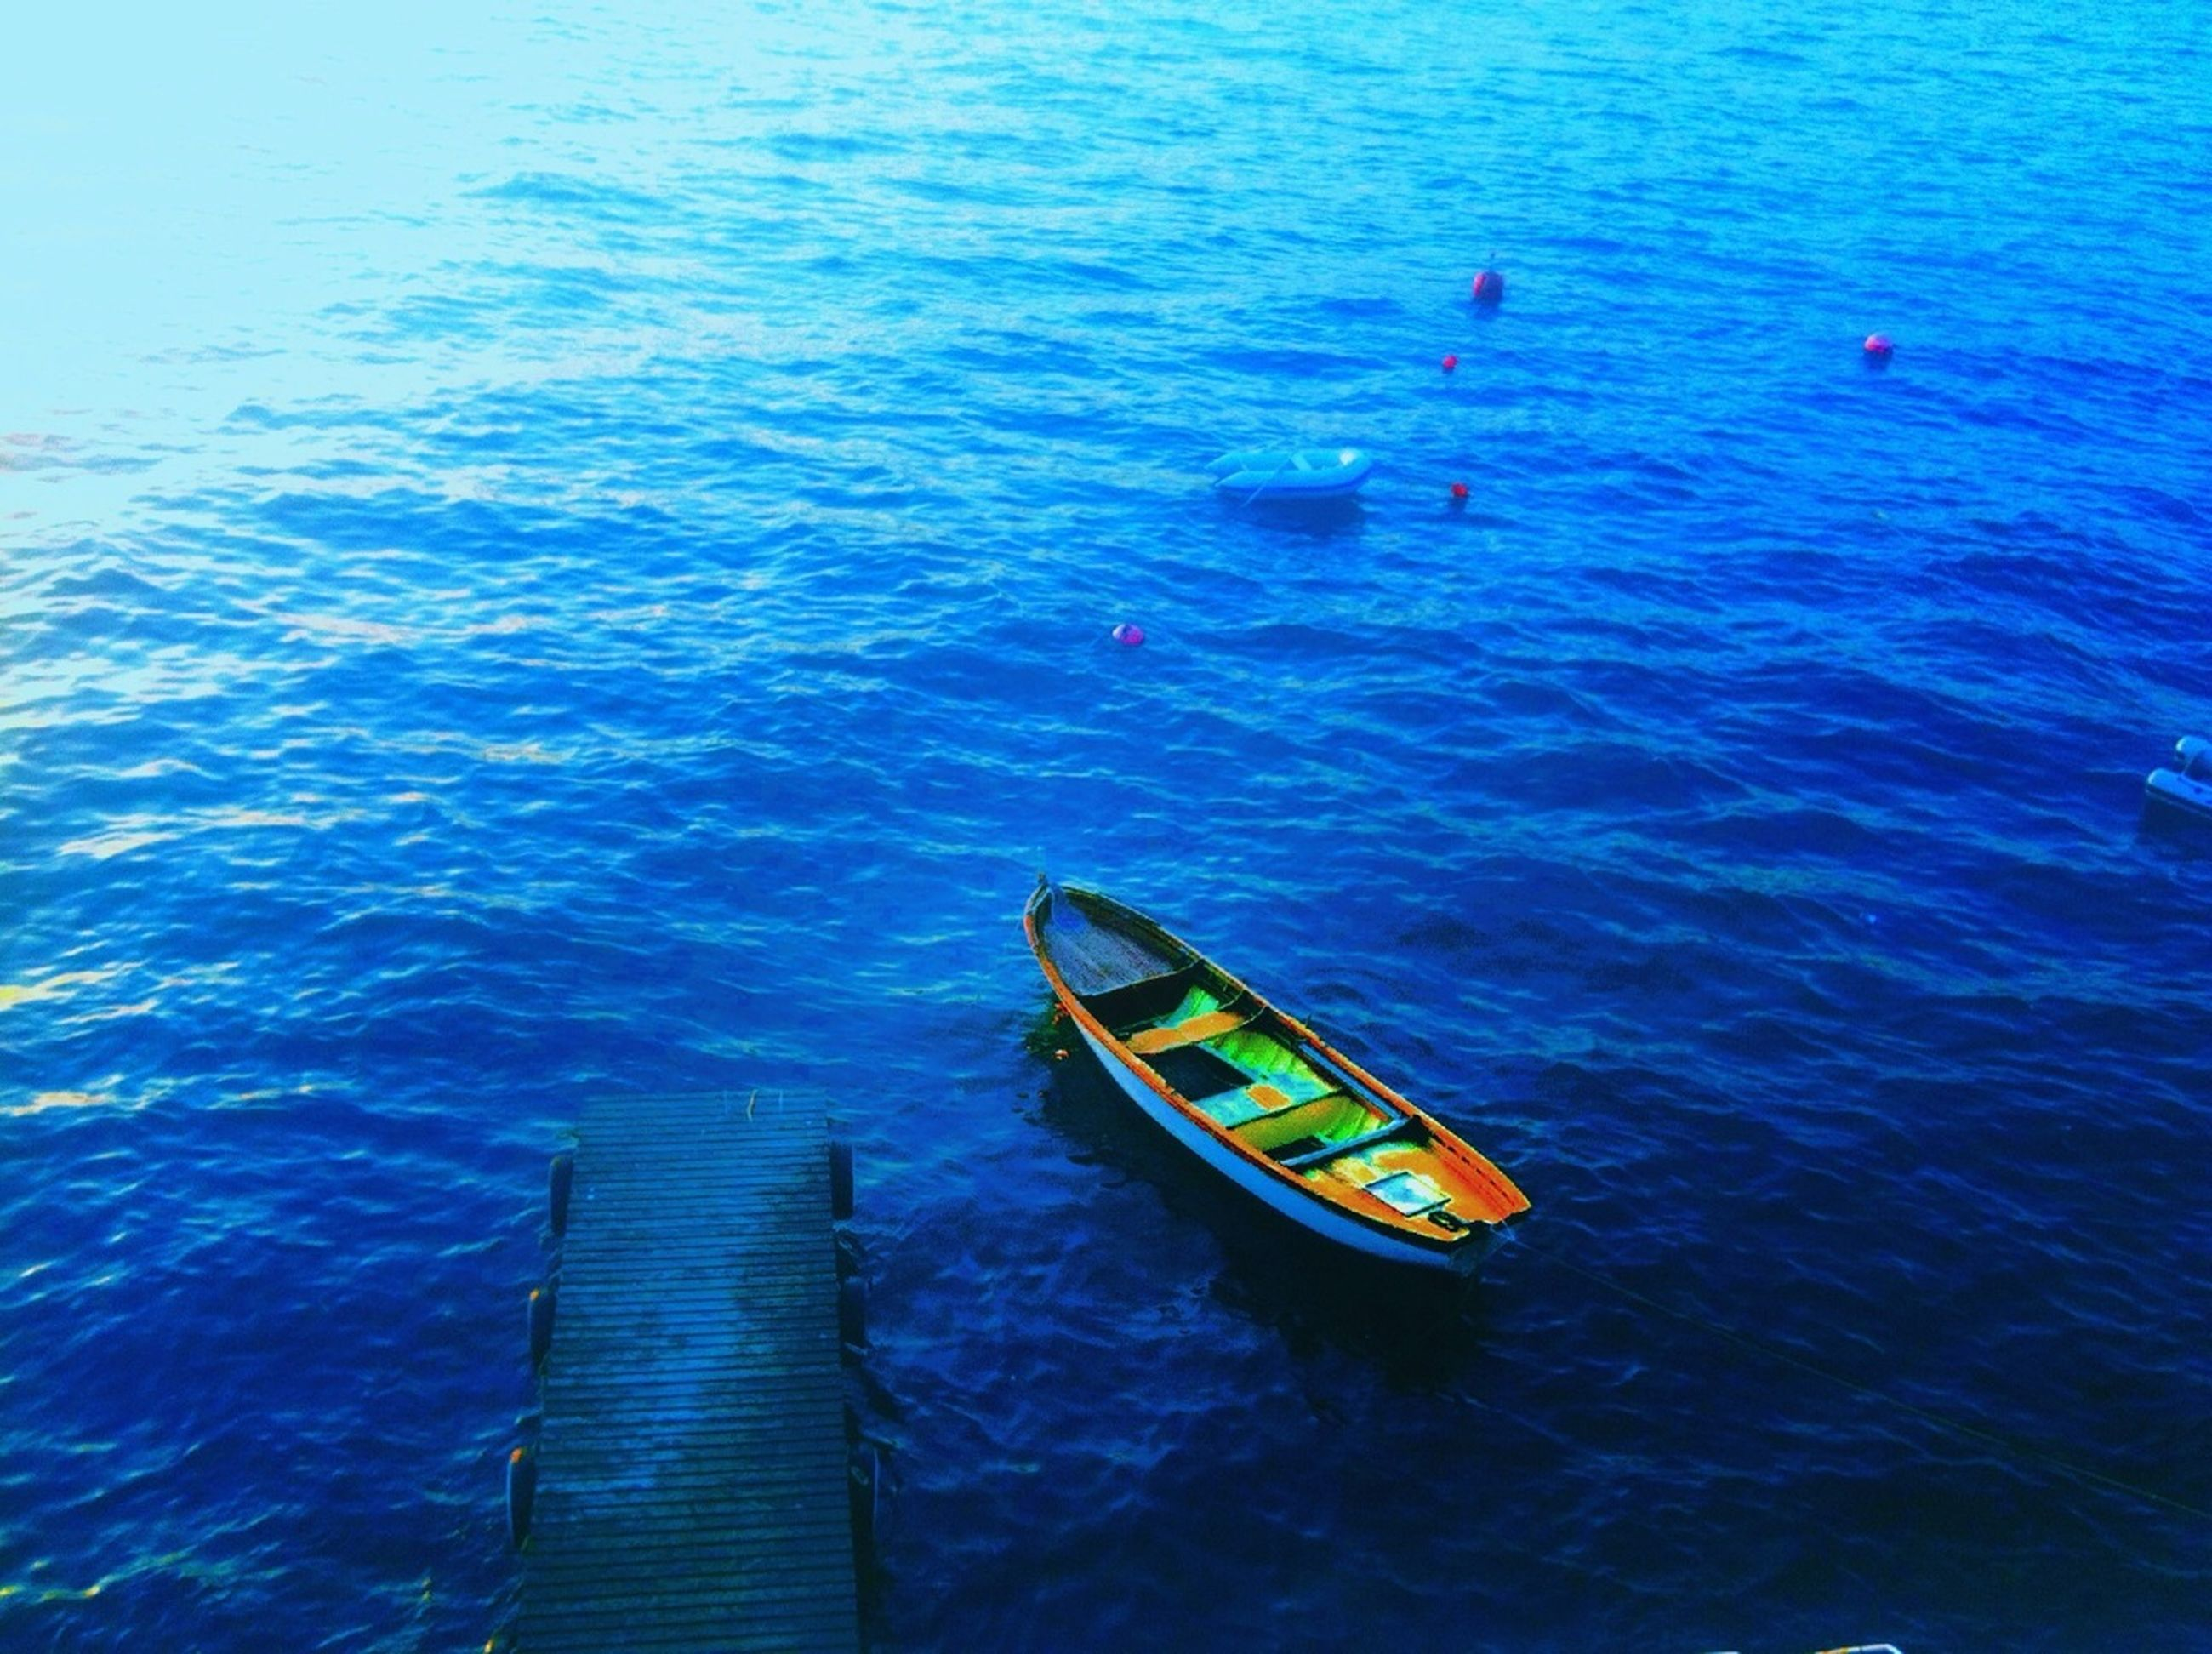 water, blue, nautical vessel, high angle view, transportation, boat, sea, rippled, mode of transport, waterfront, nature, tranquility, turquoise colored, yellow, day, beauty in nature, pier, outdoors, travel, wood - material